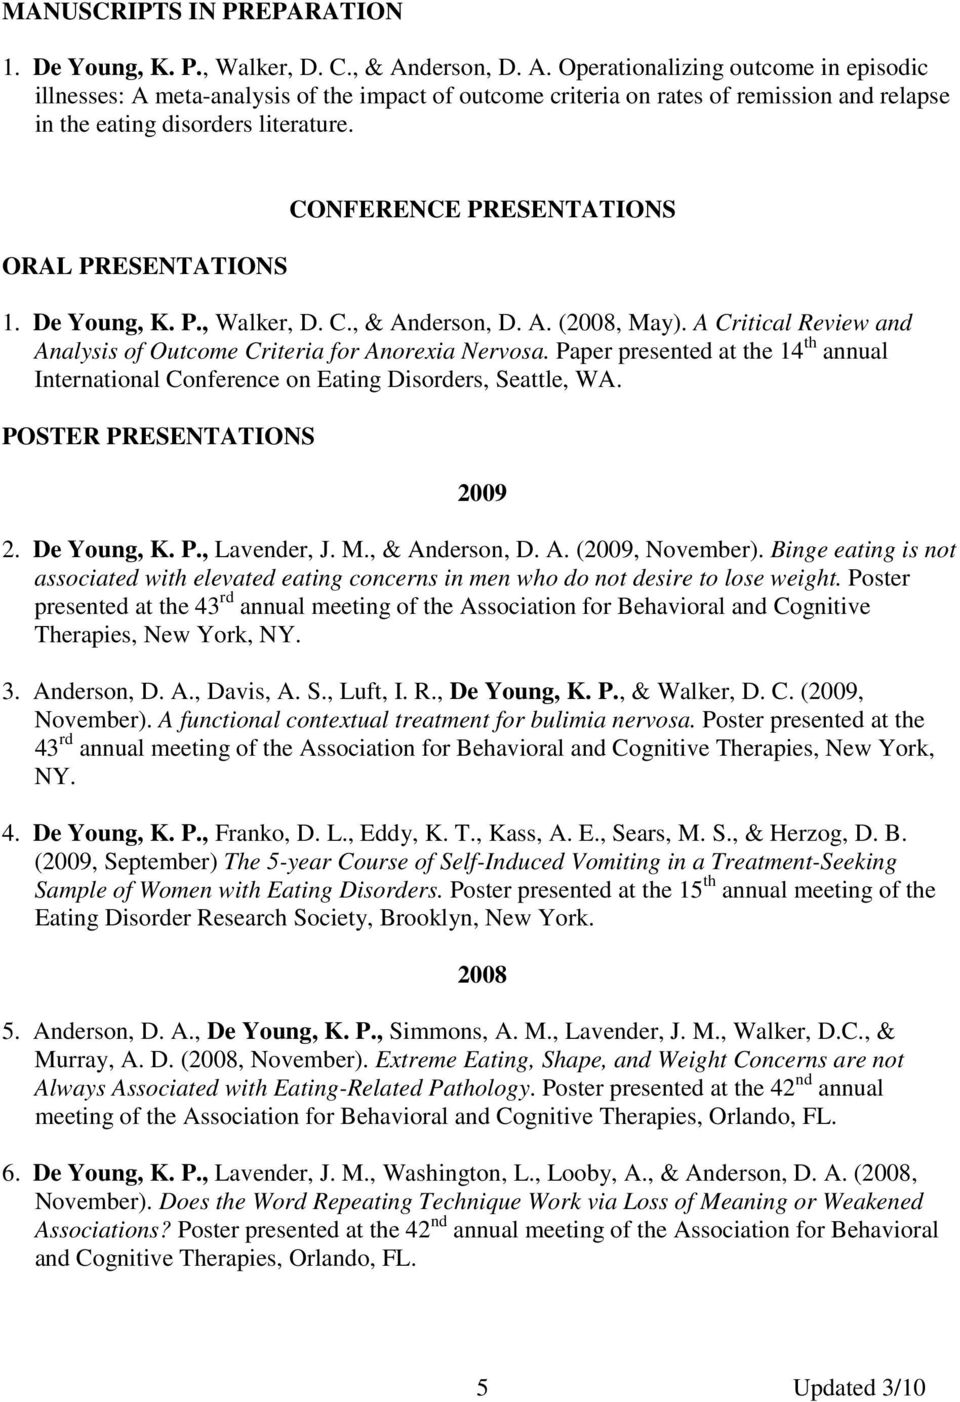 ORAL PRESENTATIONS CONFERENCE PRESENTATIONS 1. De Young, K. P., Walker, D. C., & Anderson, D. A. (2008, May). A Critical Review and Analysis of Outcome Criteria for Anorexia Nervosa.